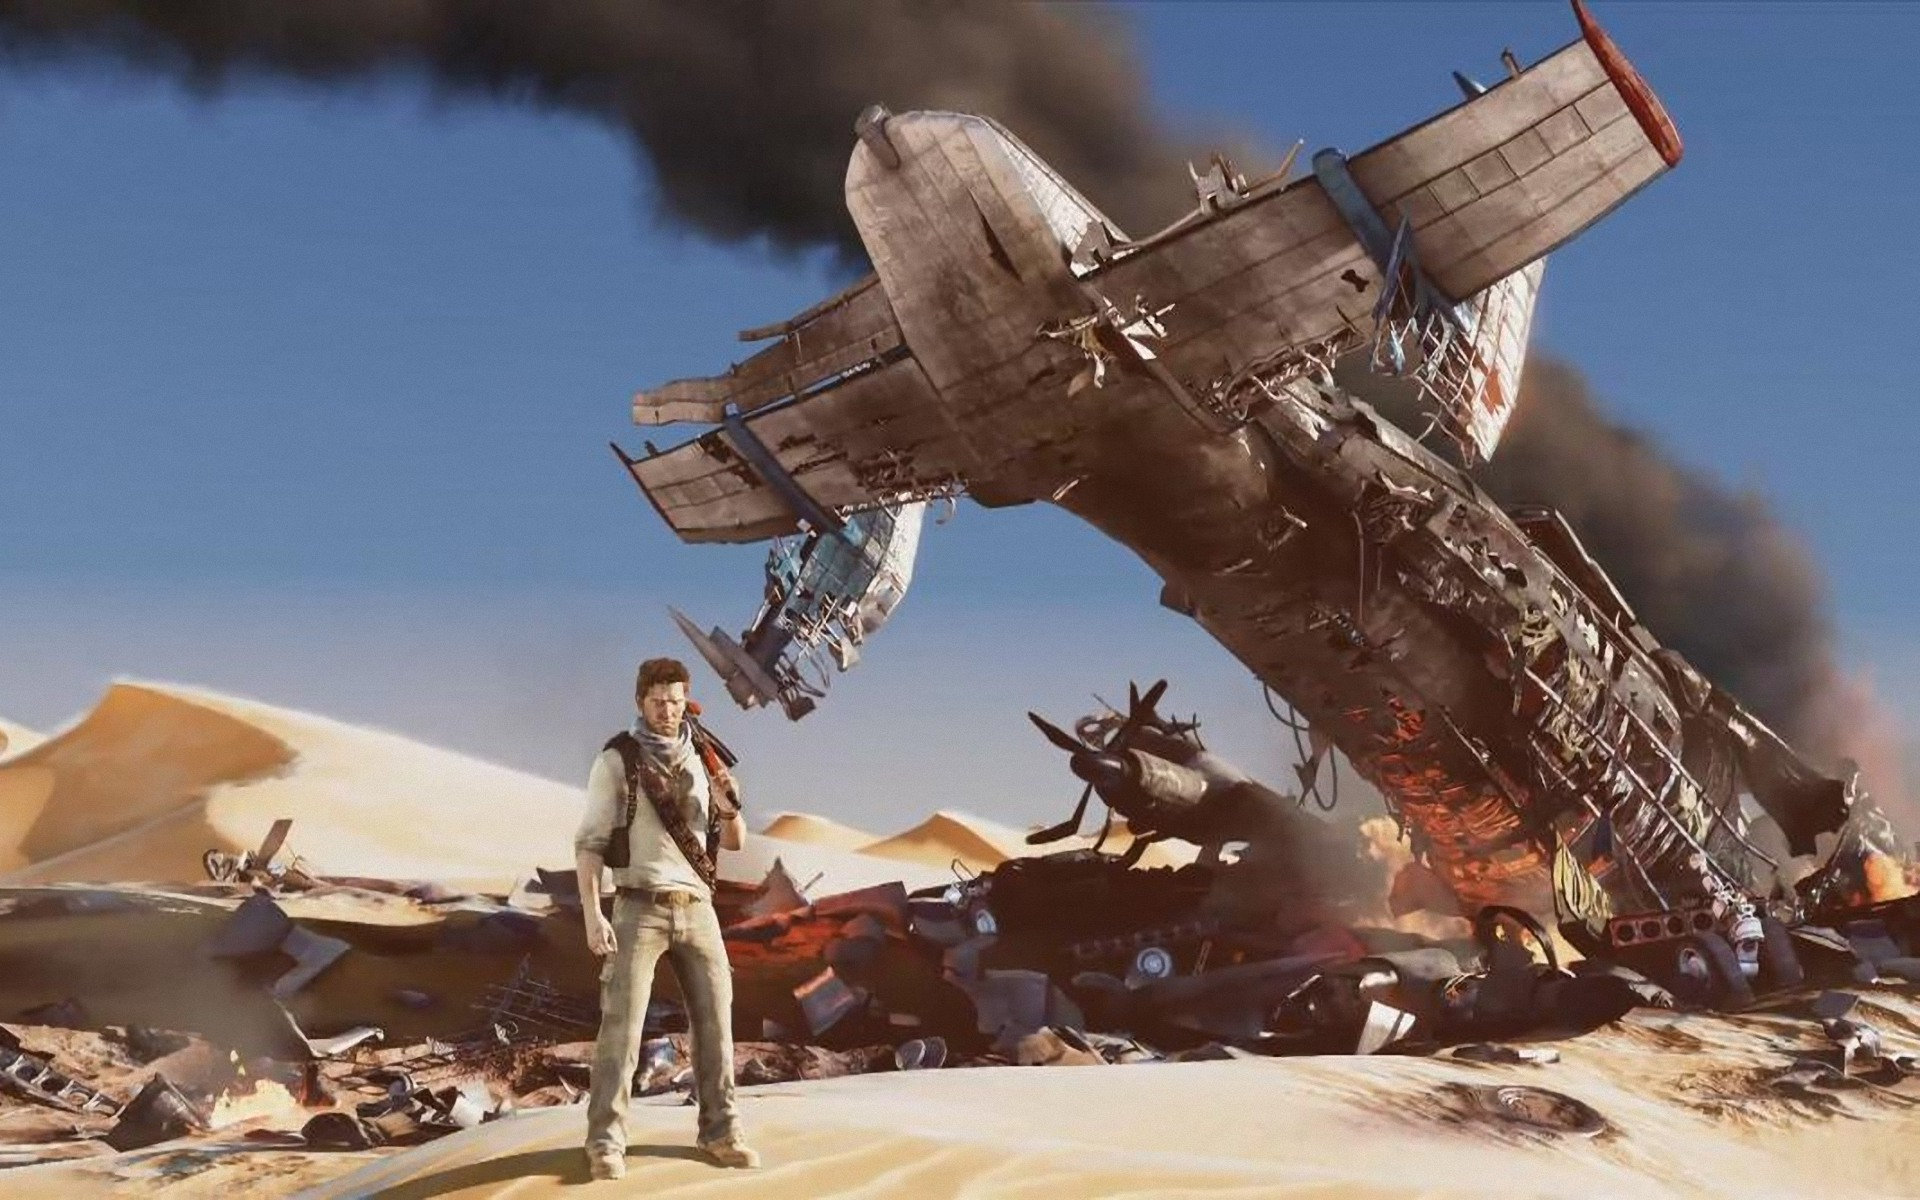 Uncharted 3 Drakes Deception 1920x1200 Wallpapers 1920x1200 1920x1200